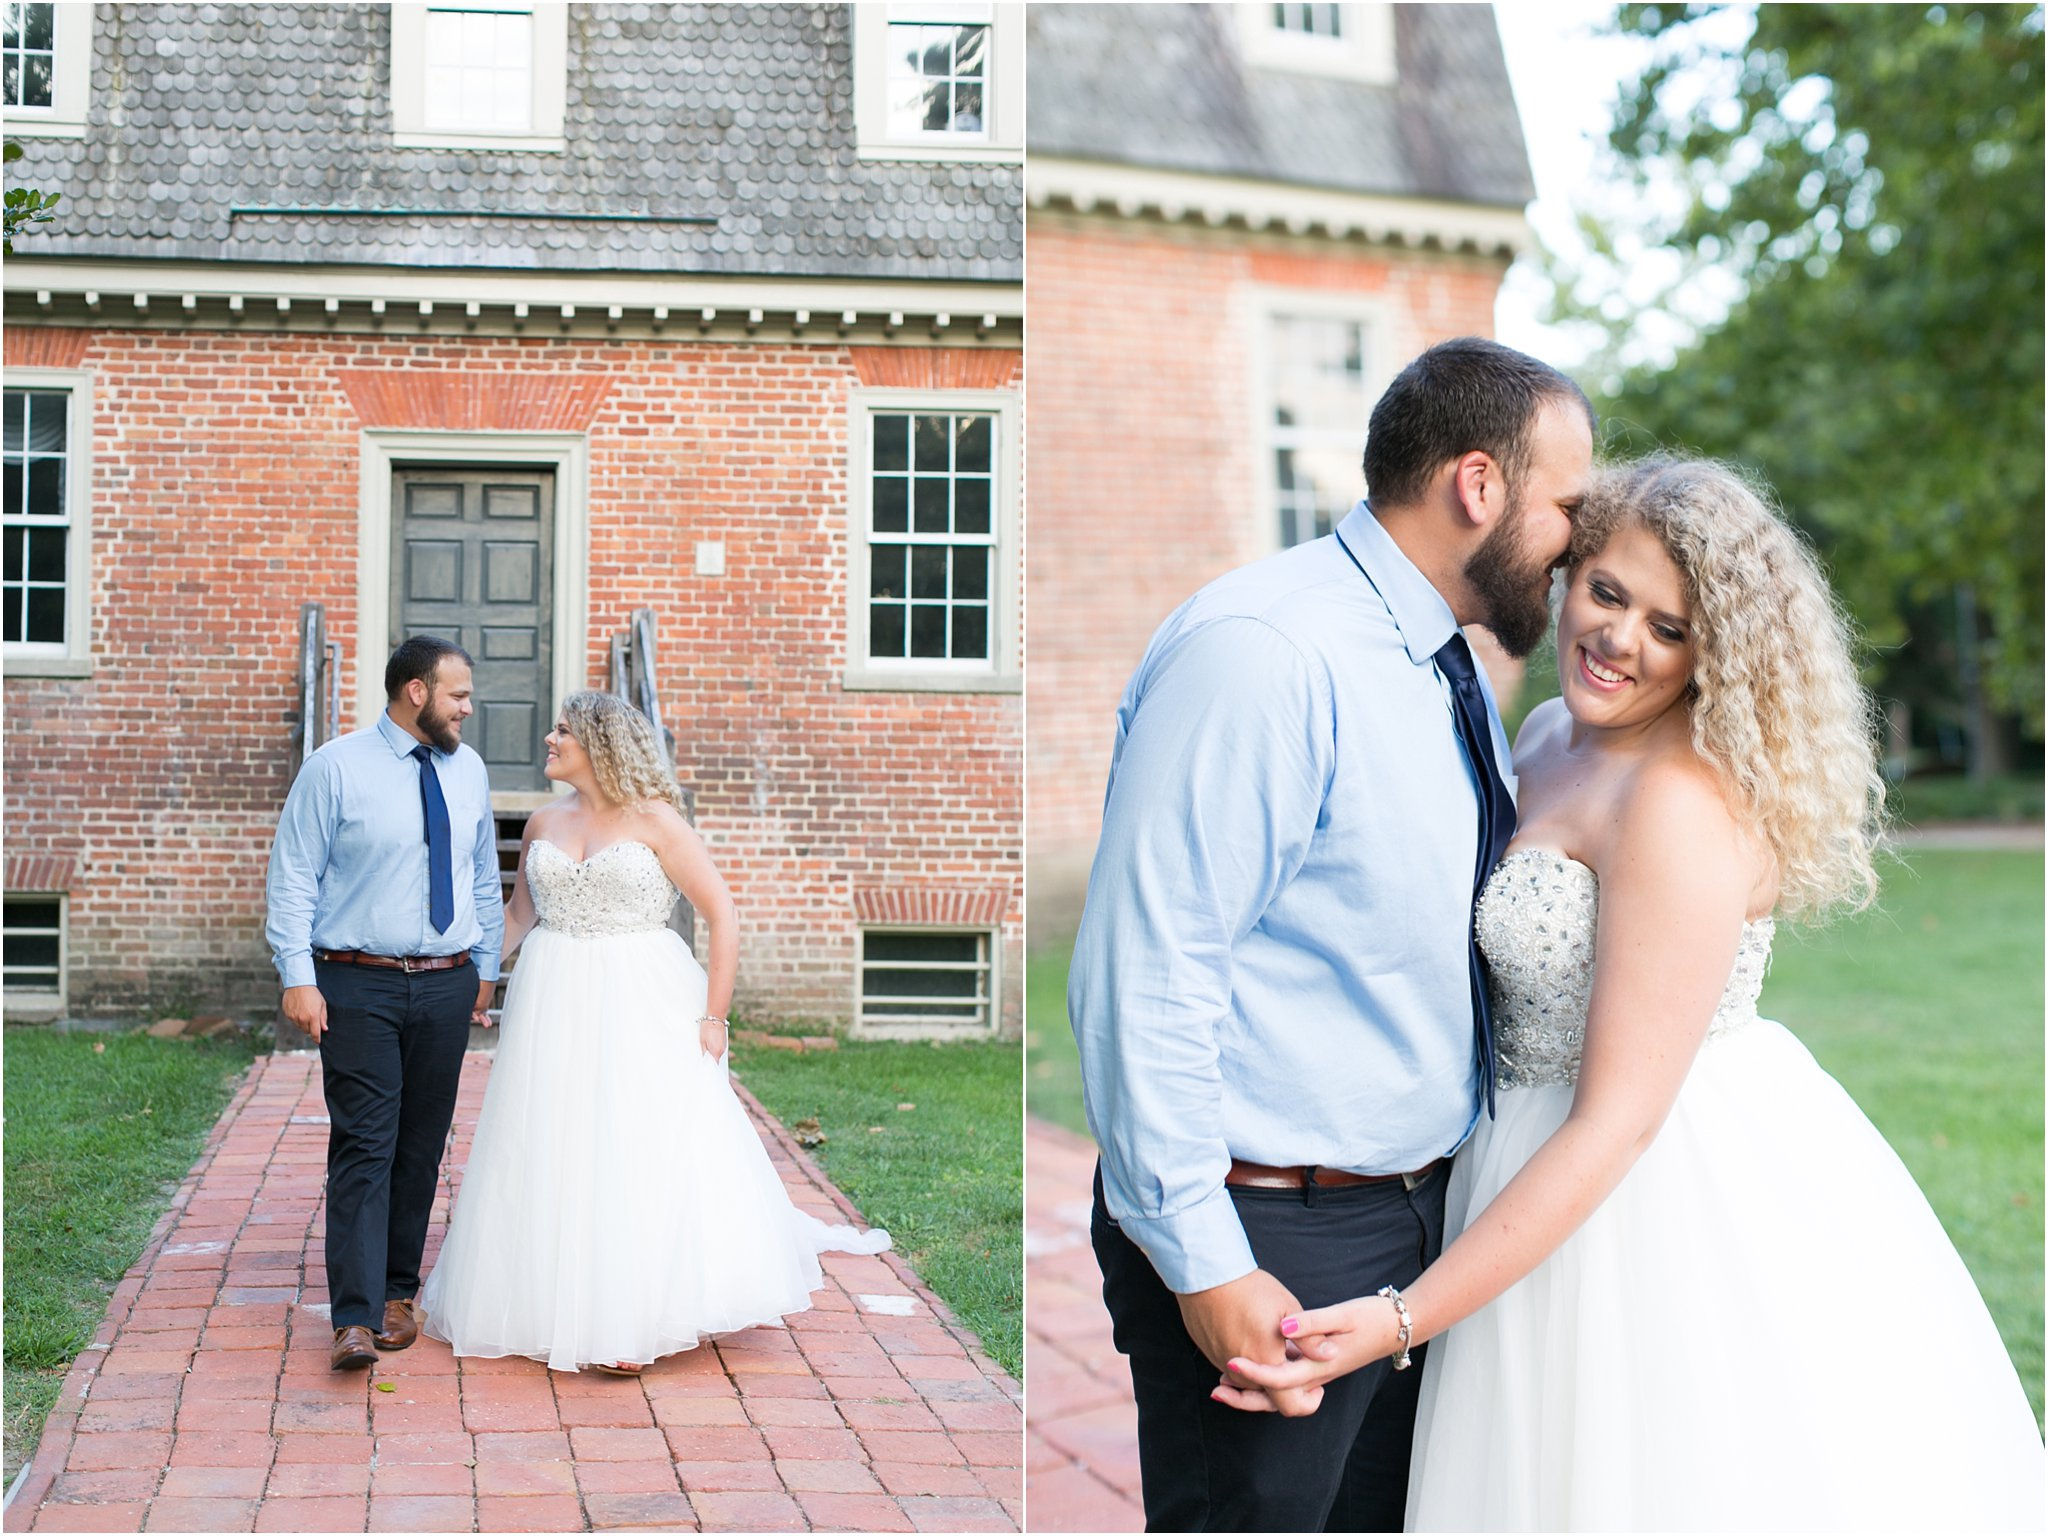 jessica_ryan_photography_virginia_virginia_beach_francis_land_house_portraits_anniversary_portraits_bride_and_groom_beloved_historical_home_wedding_2694